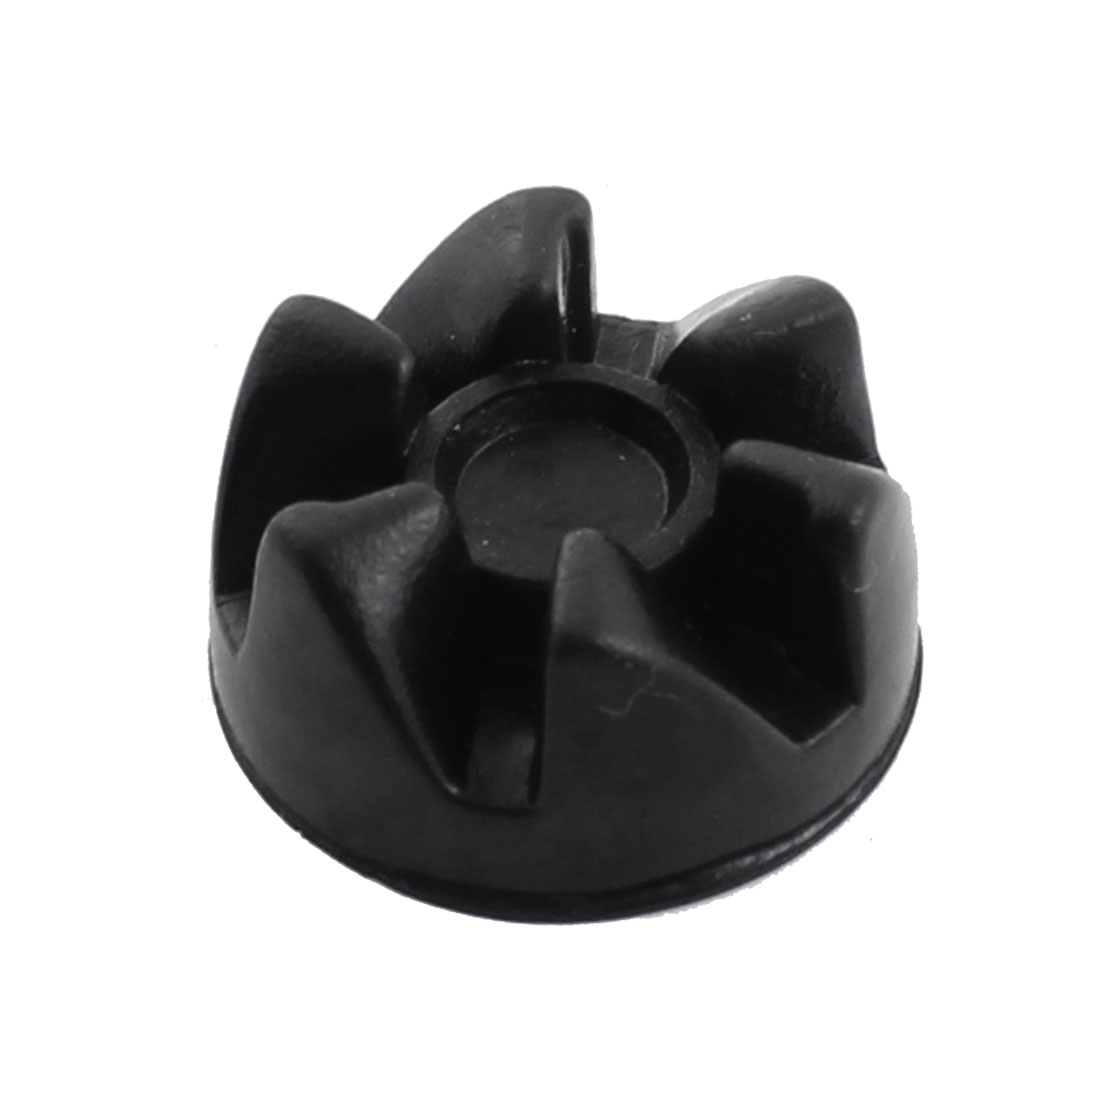 Household Electric Blender 6-Teeth Rubber Coupling Clutch 28mm x 4.5mm Black